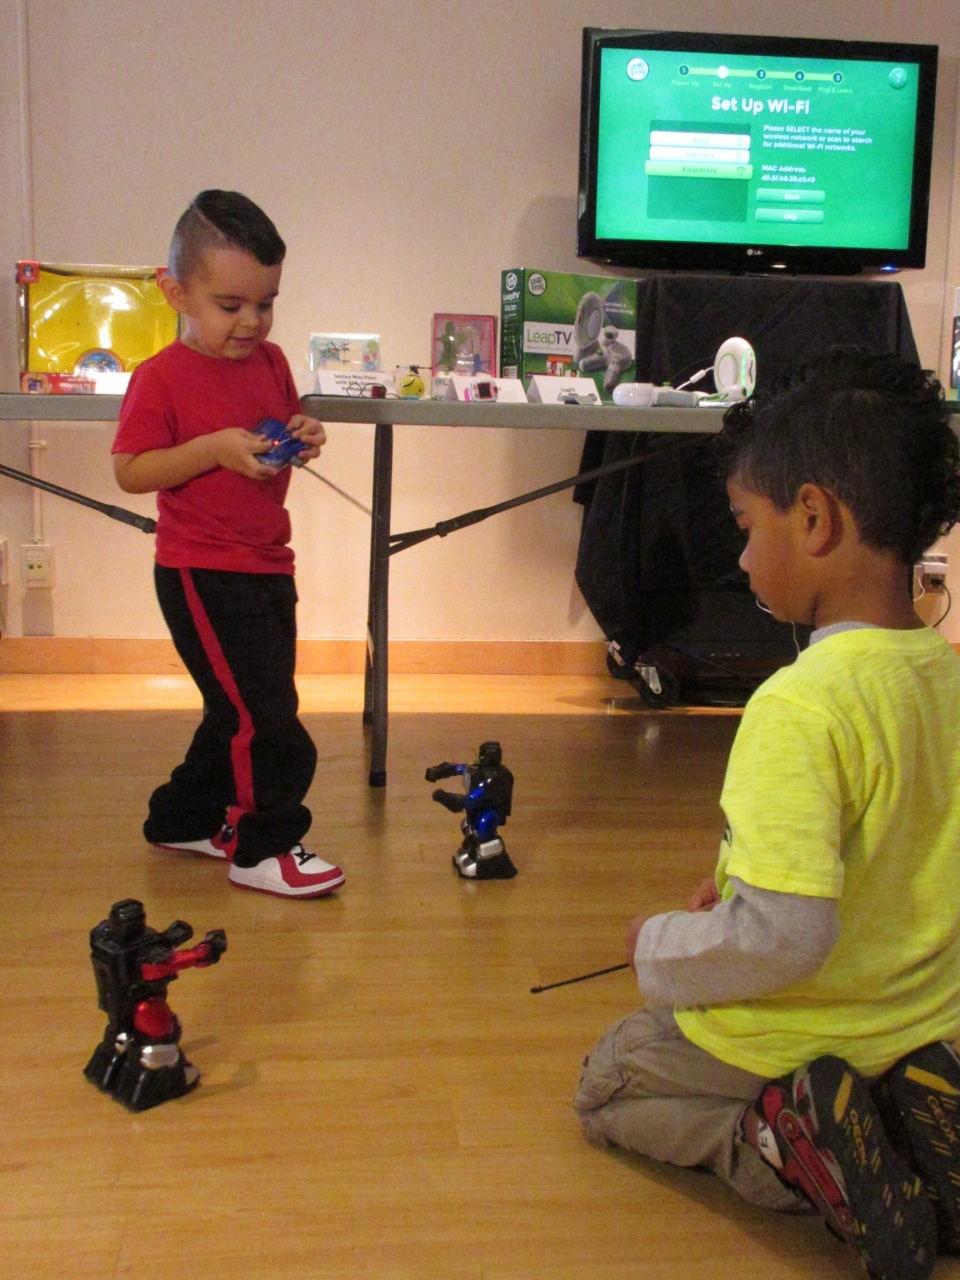 Two boys play with robots features in the 'Hot Toys for the Holidays' showcase in downtown Toronto on Tuesday, Nov. 4, 2014. (Angela Mulholland / CTVNews.ca)